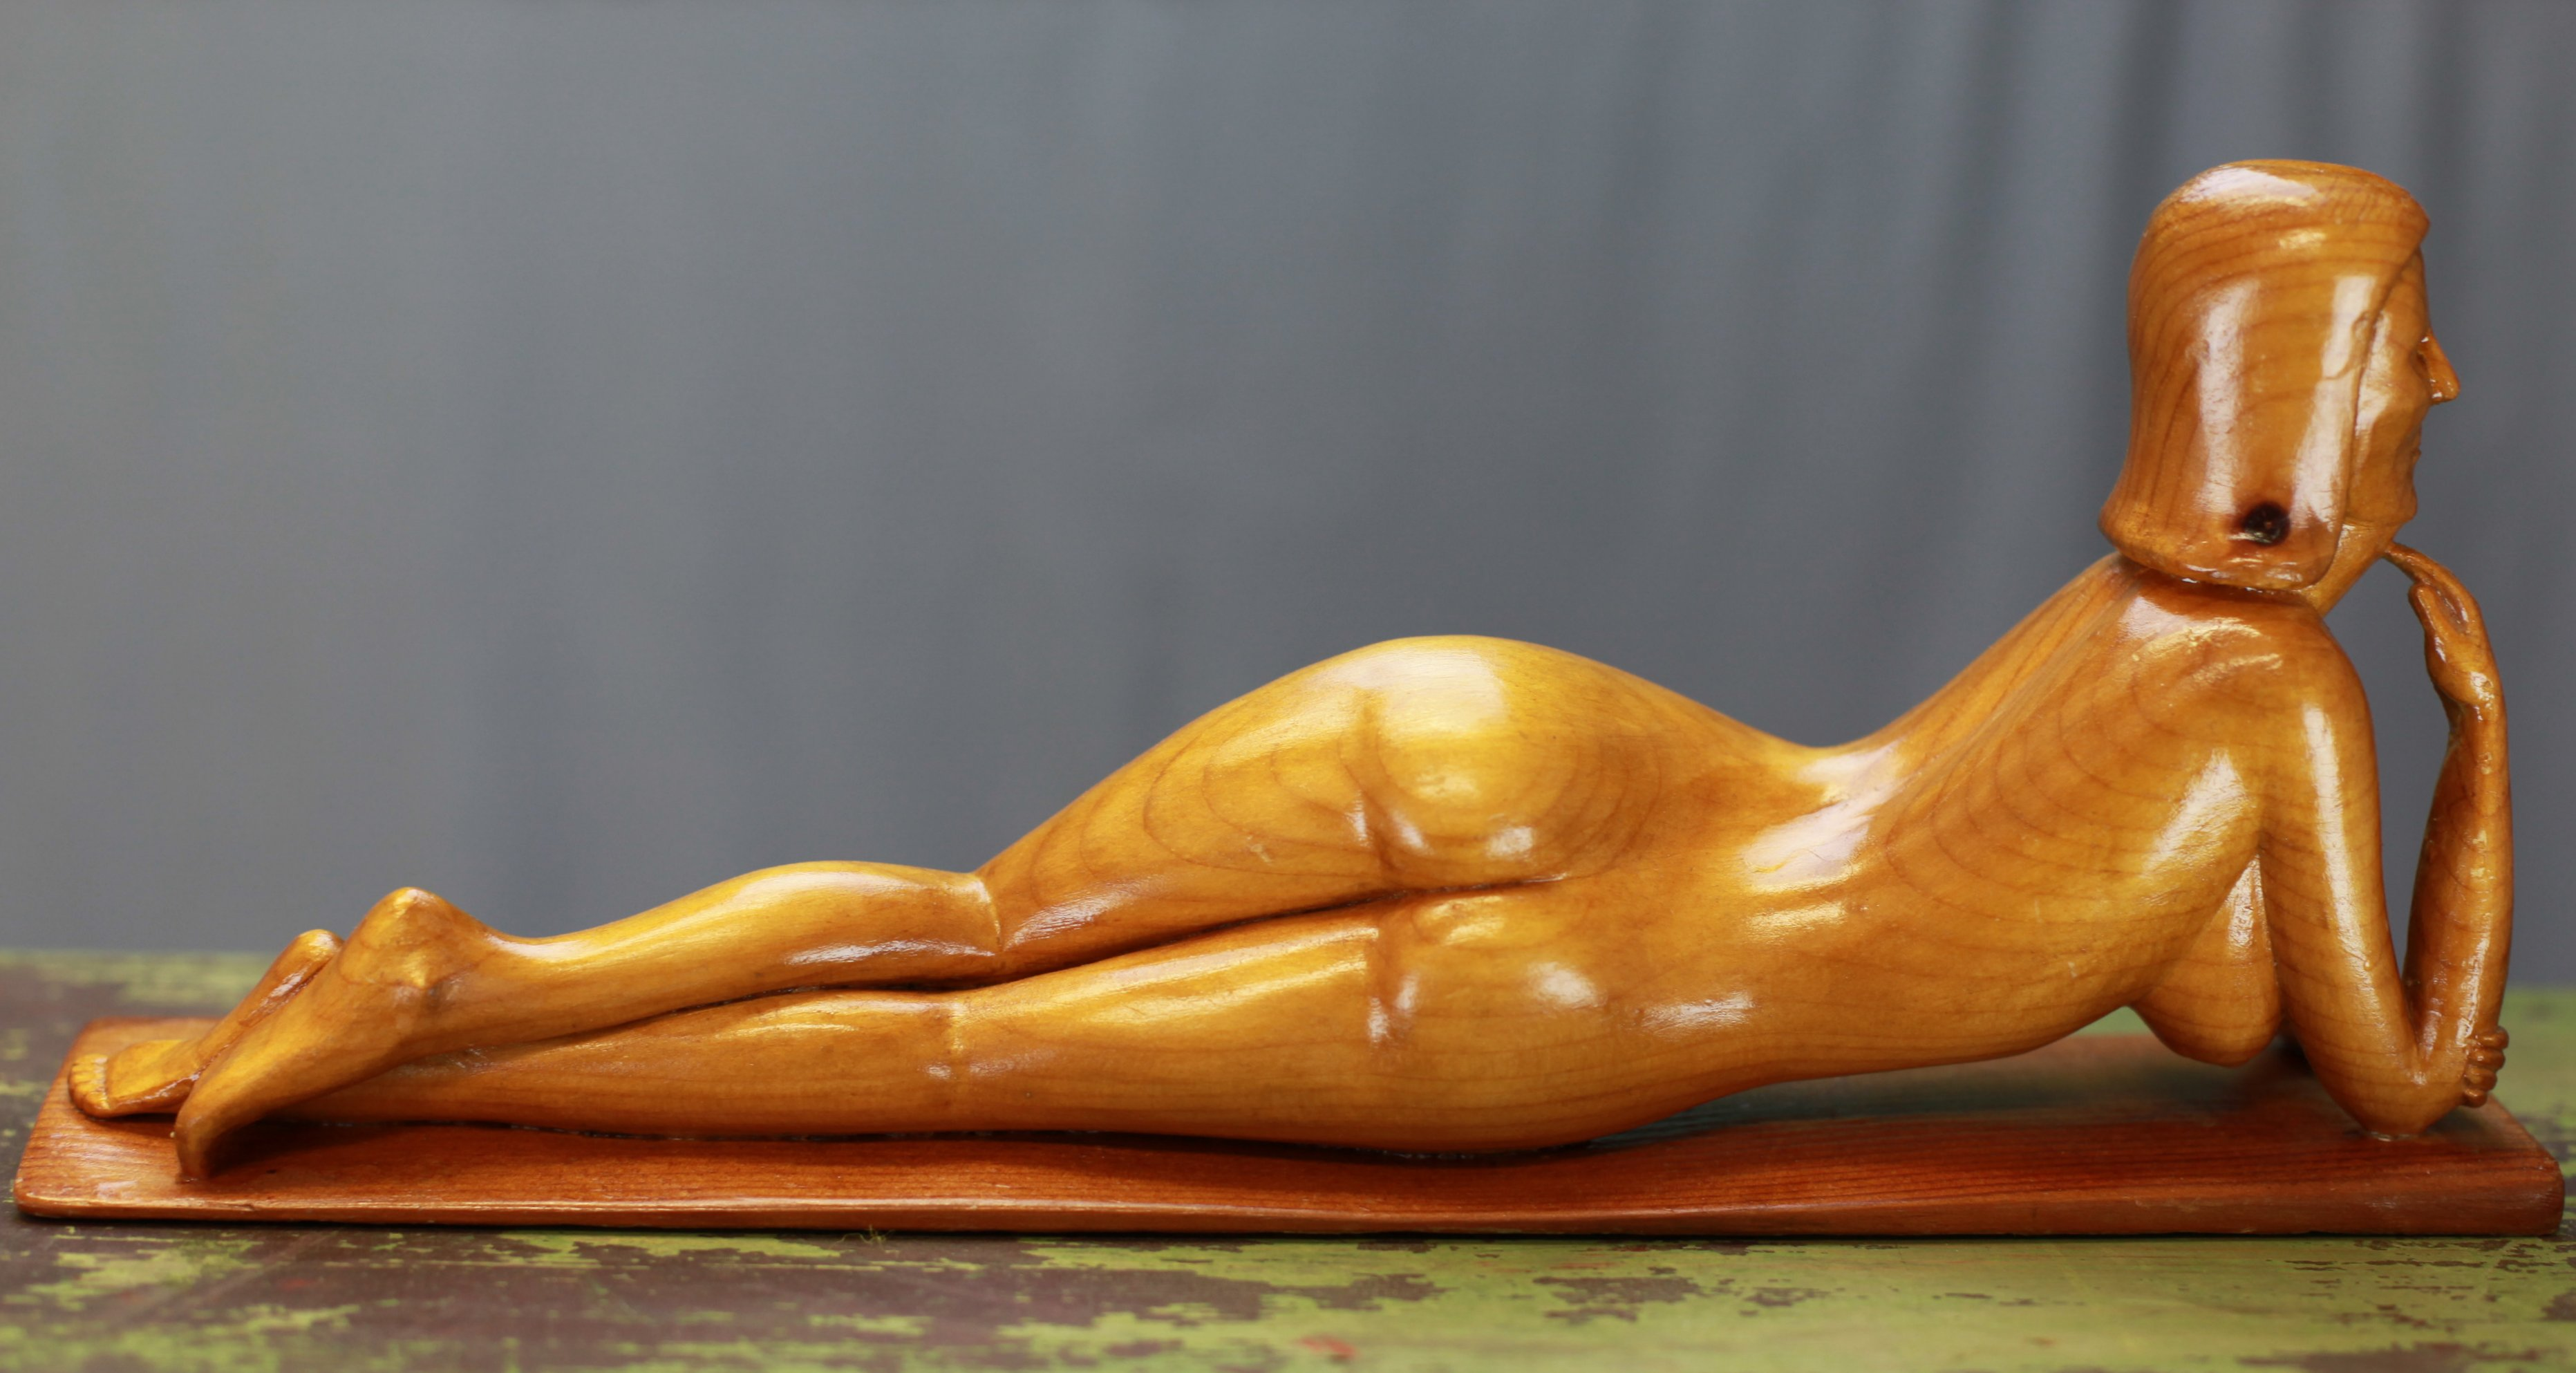 Nude Woman by Clifford Roach